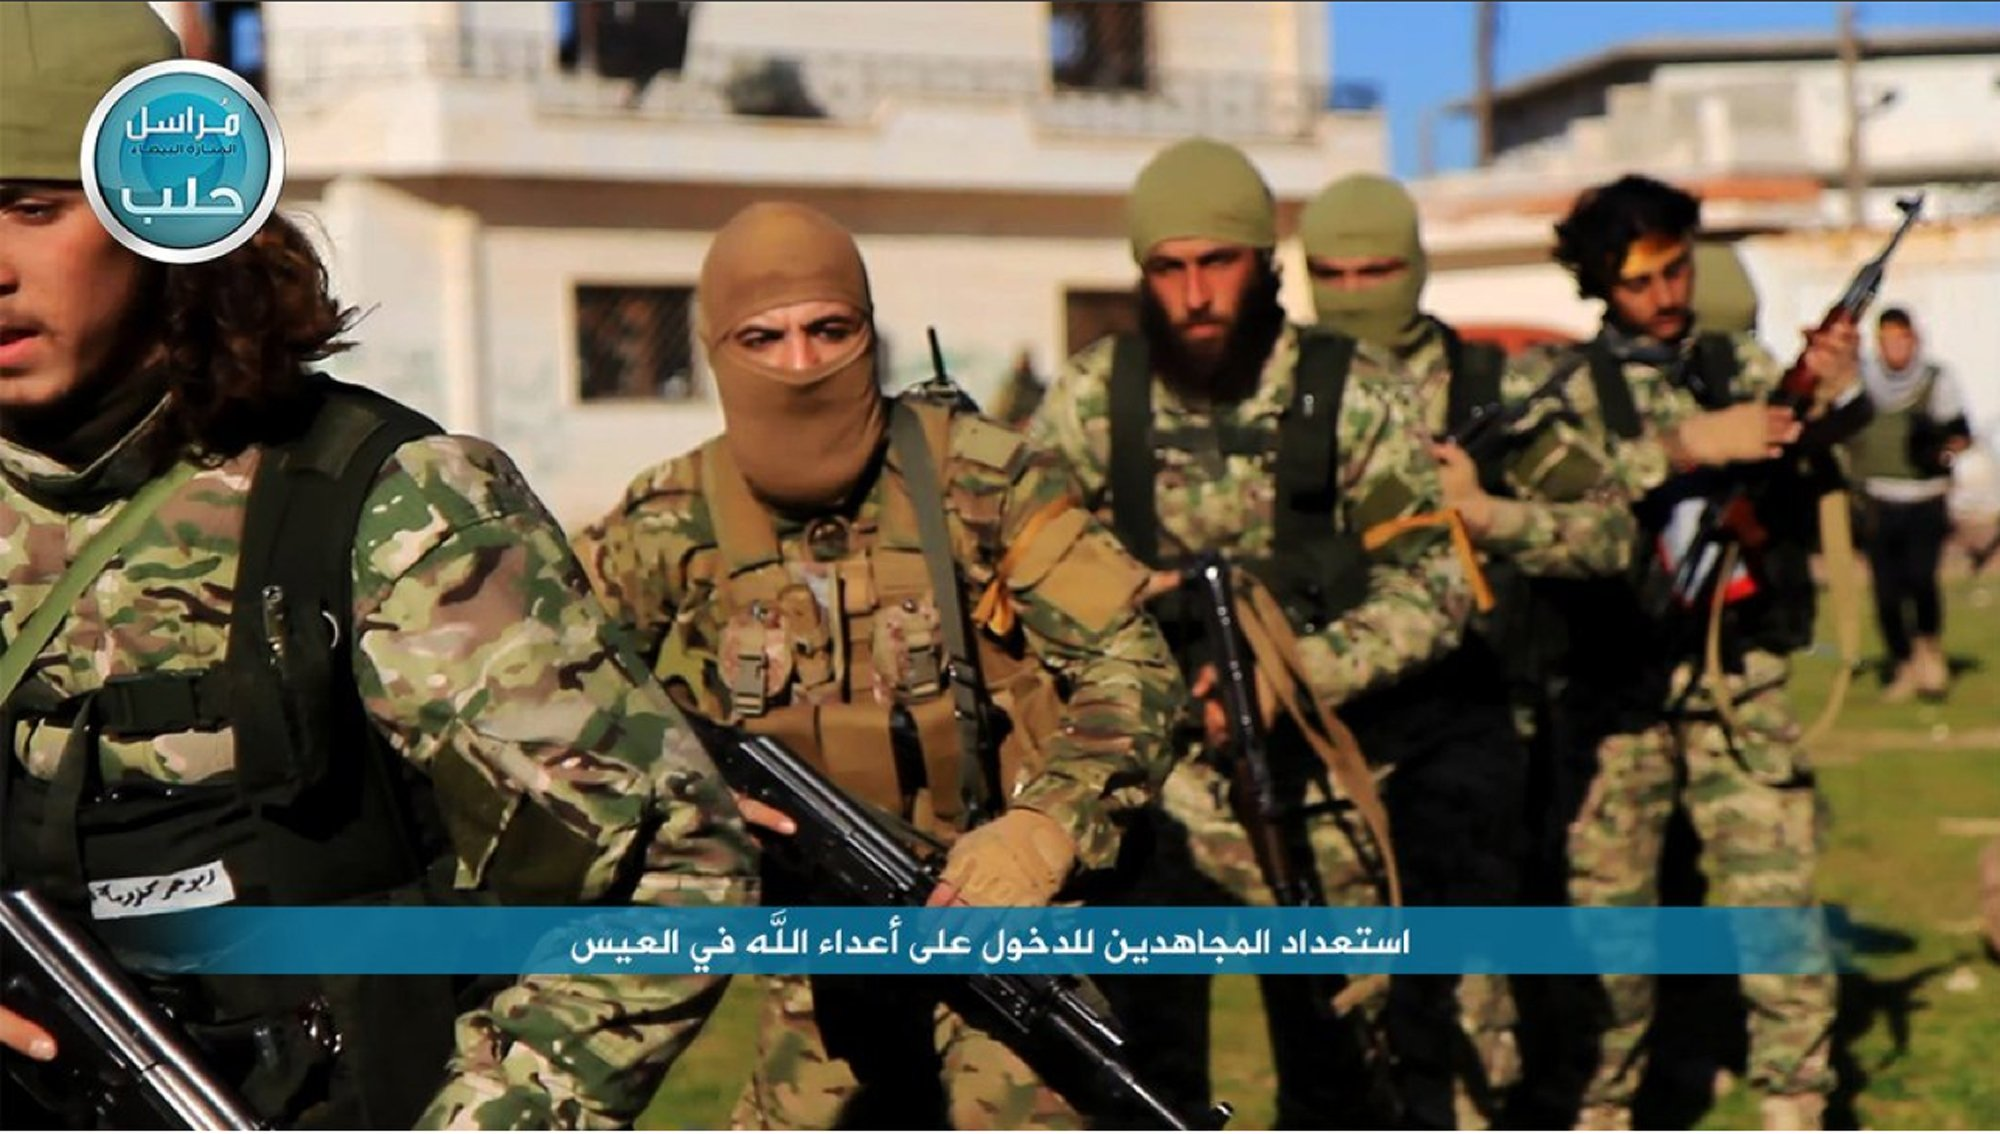 Amnesty documents 'chilling' abuses by armed groups in Syria